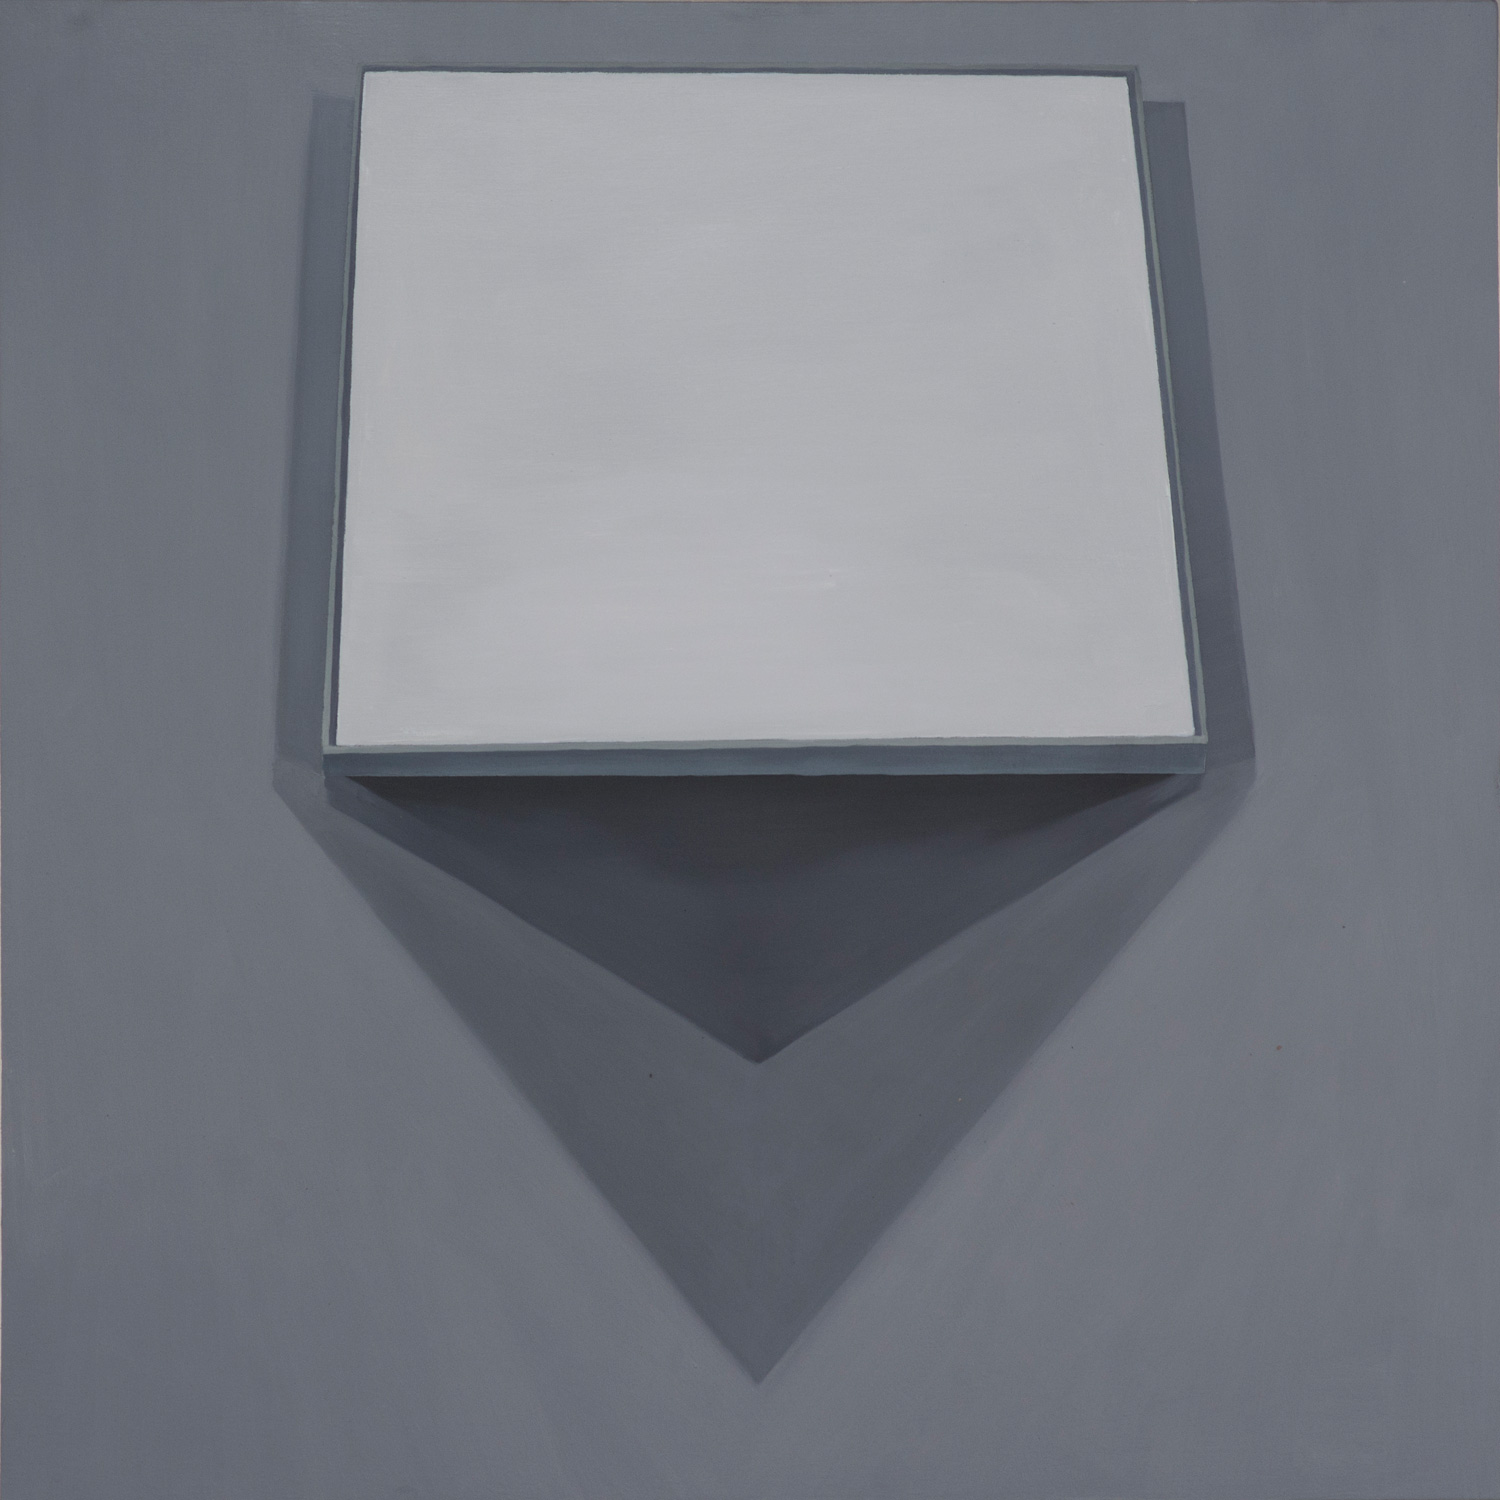 Black Square (1915), 2015, oil on canvas mounted on board, 80x80cm